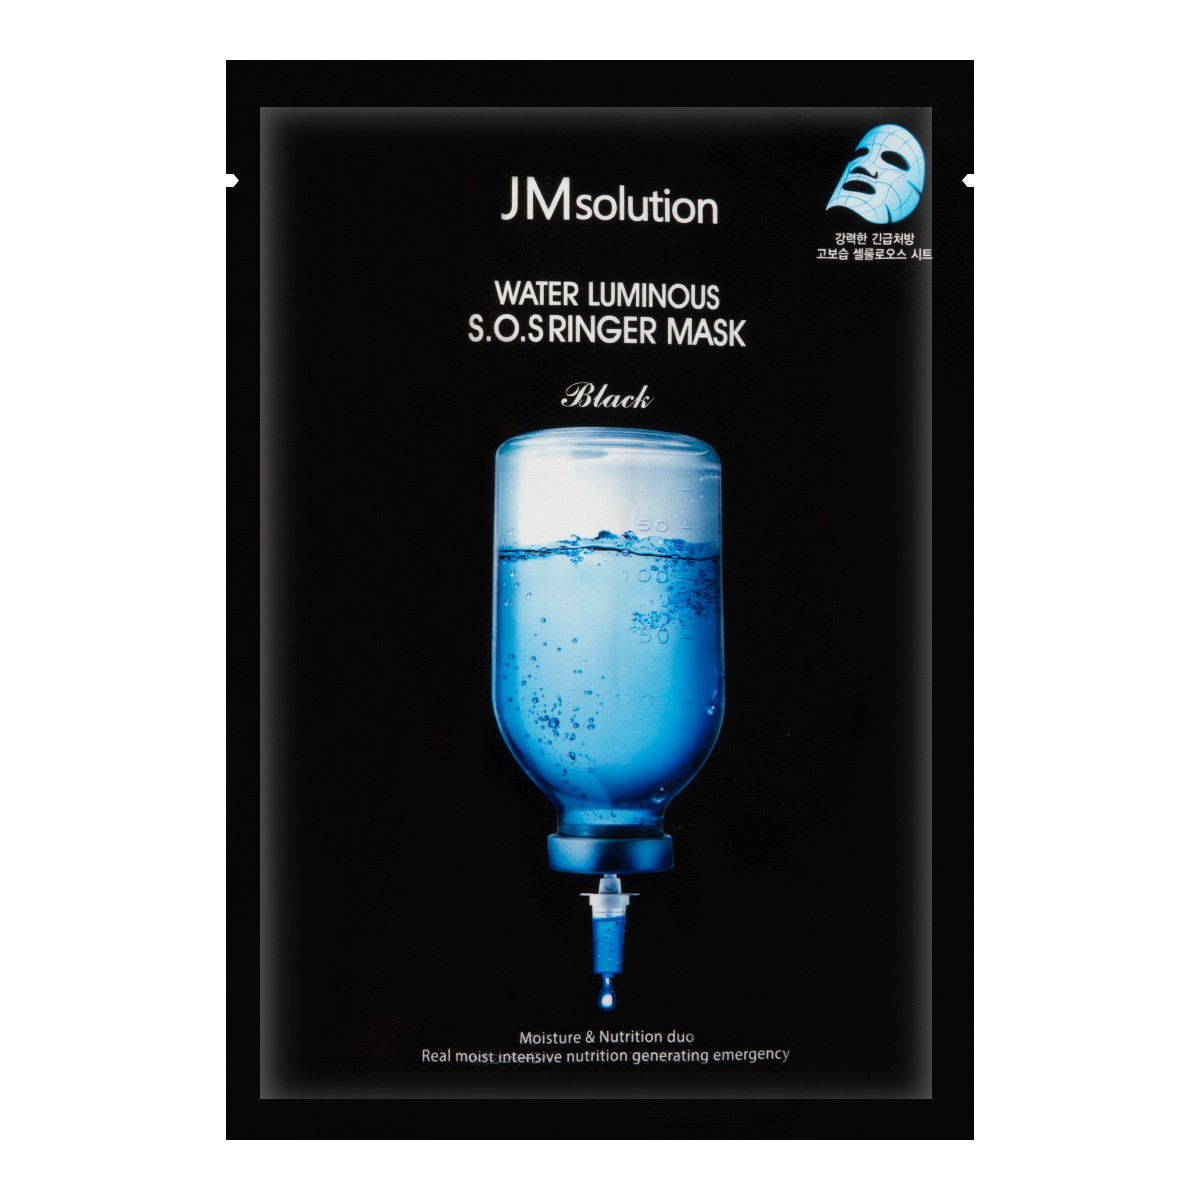 Yamibuy.com:Customer reviews:JM SOLUTION Water Luminous S.O.S Ringer Mask Black 1sheet